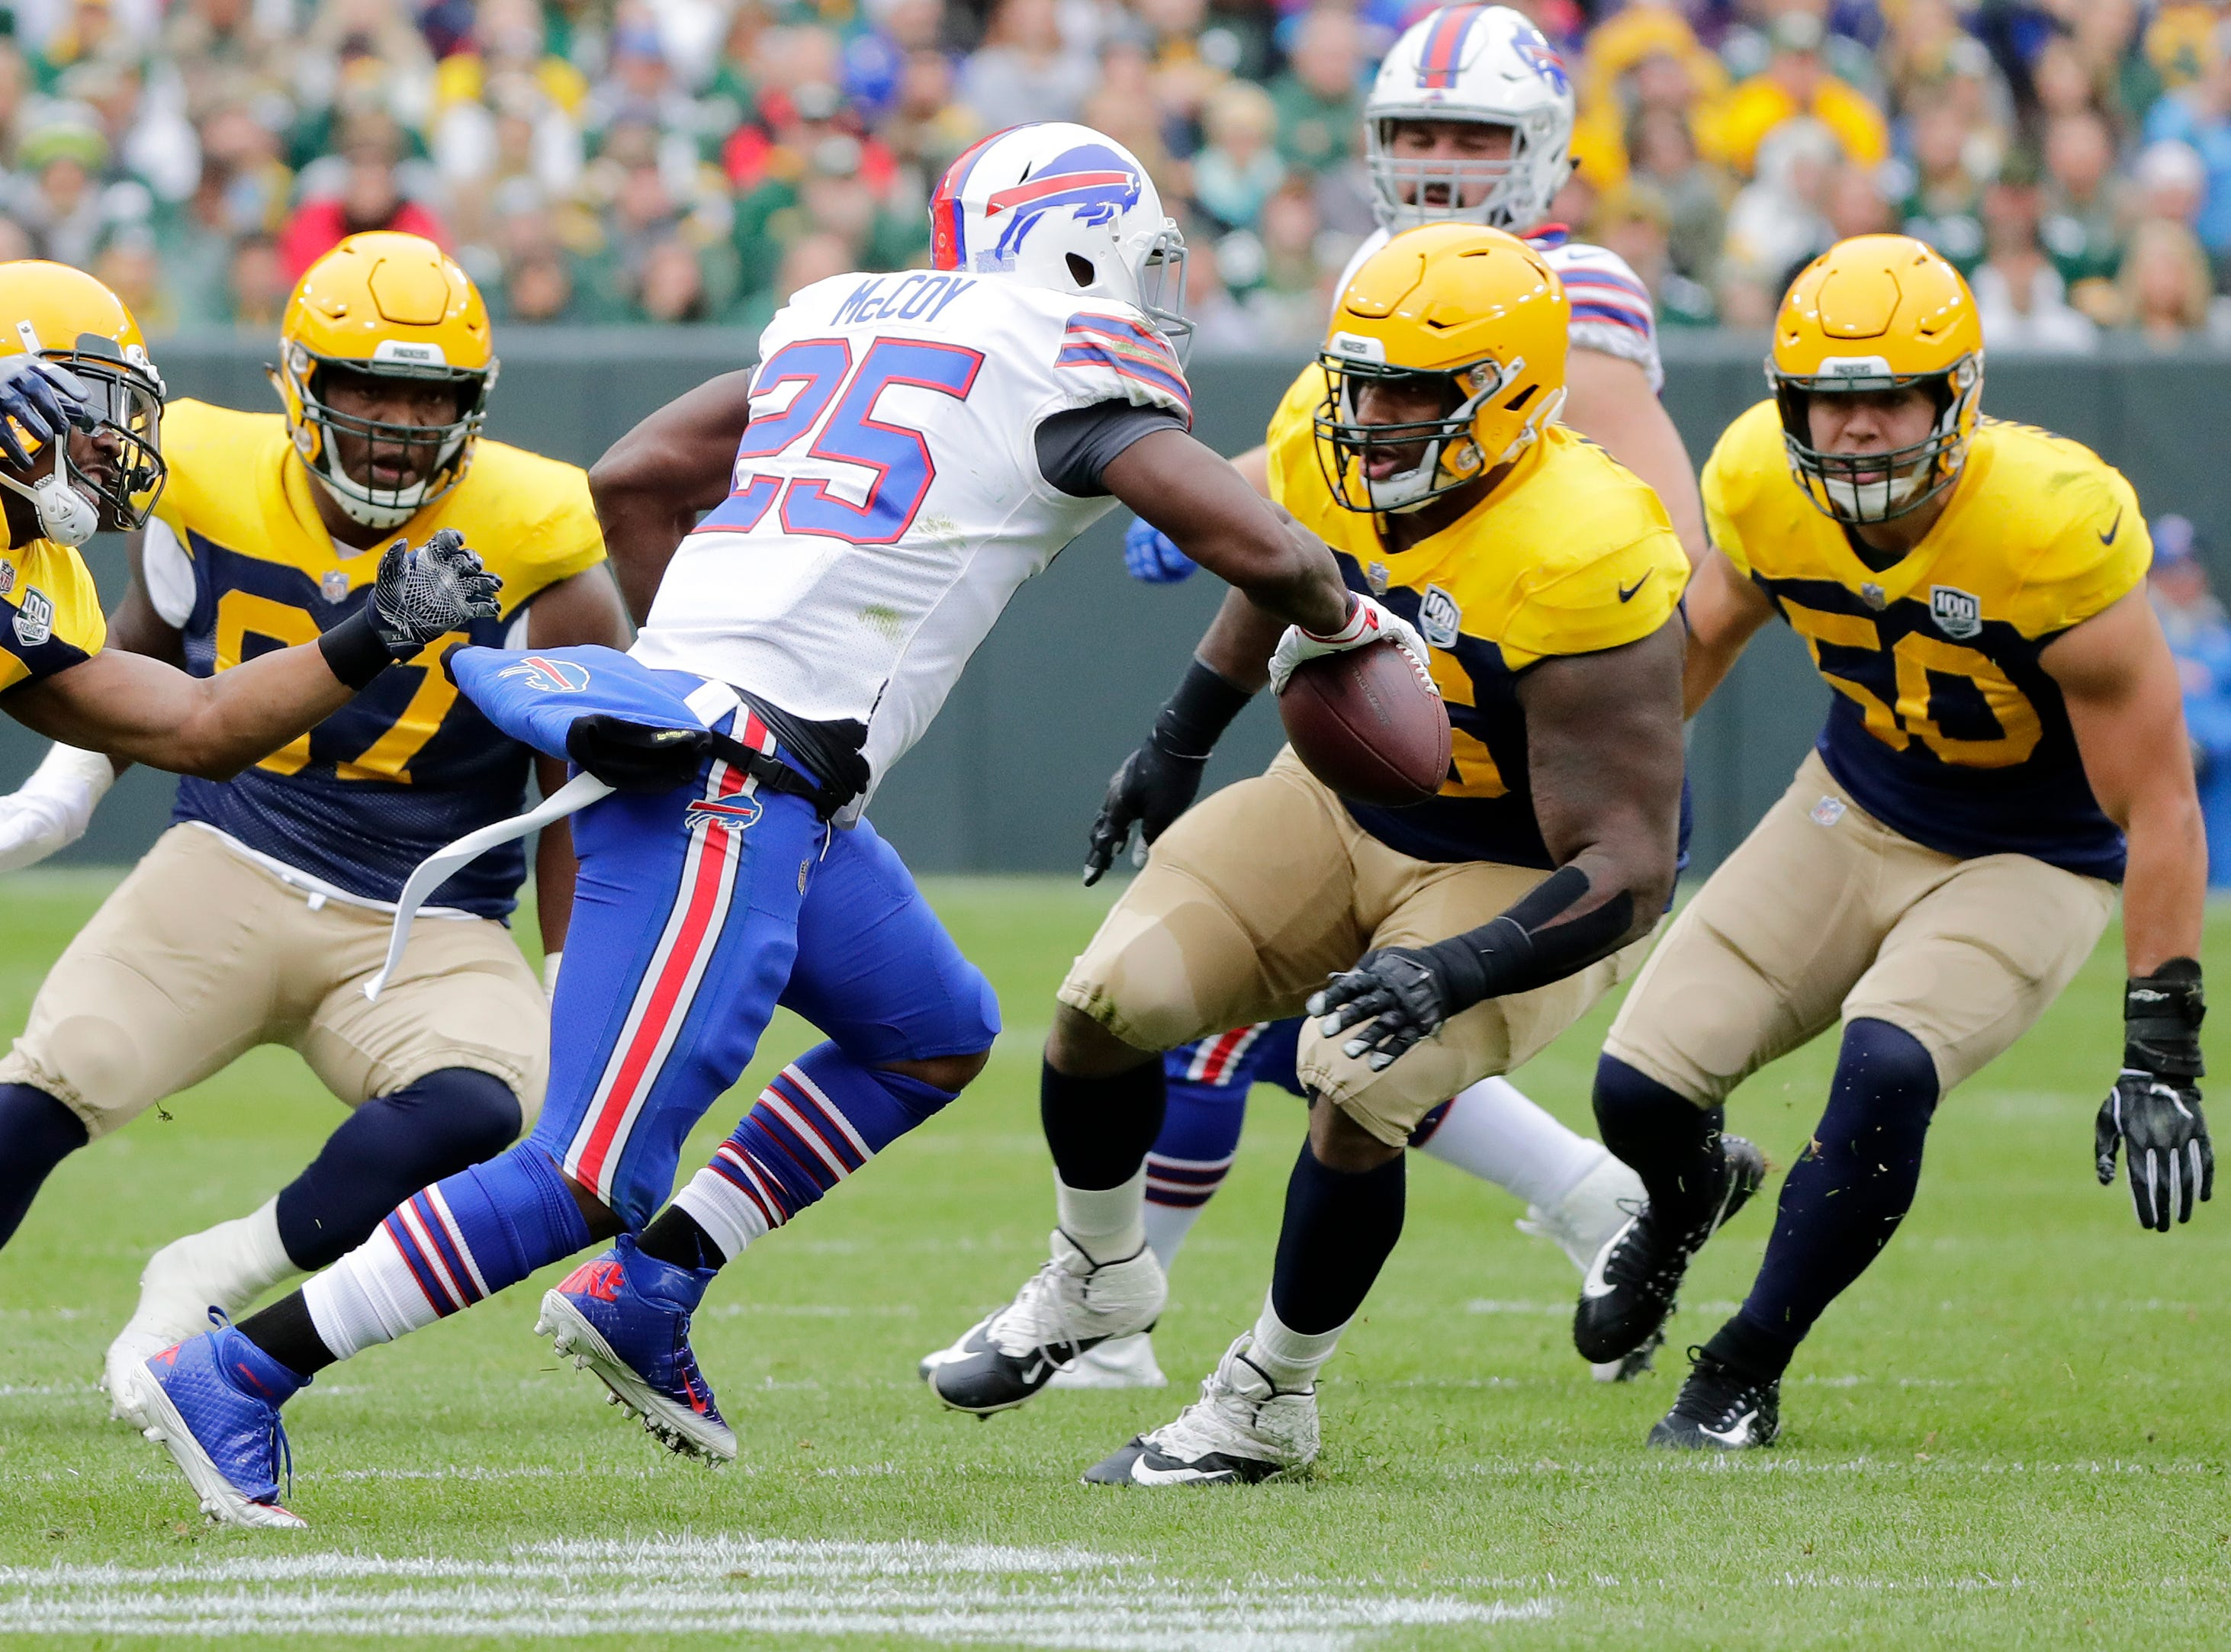 Buffalo Bills running back LeSean McCoy (25) is surrounded by a group of Green Bay Packers players in the first half at Lambeau Field on Sunday, September 30, 2018 in Green Bay, Wis.